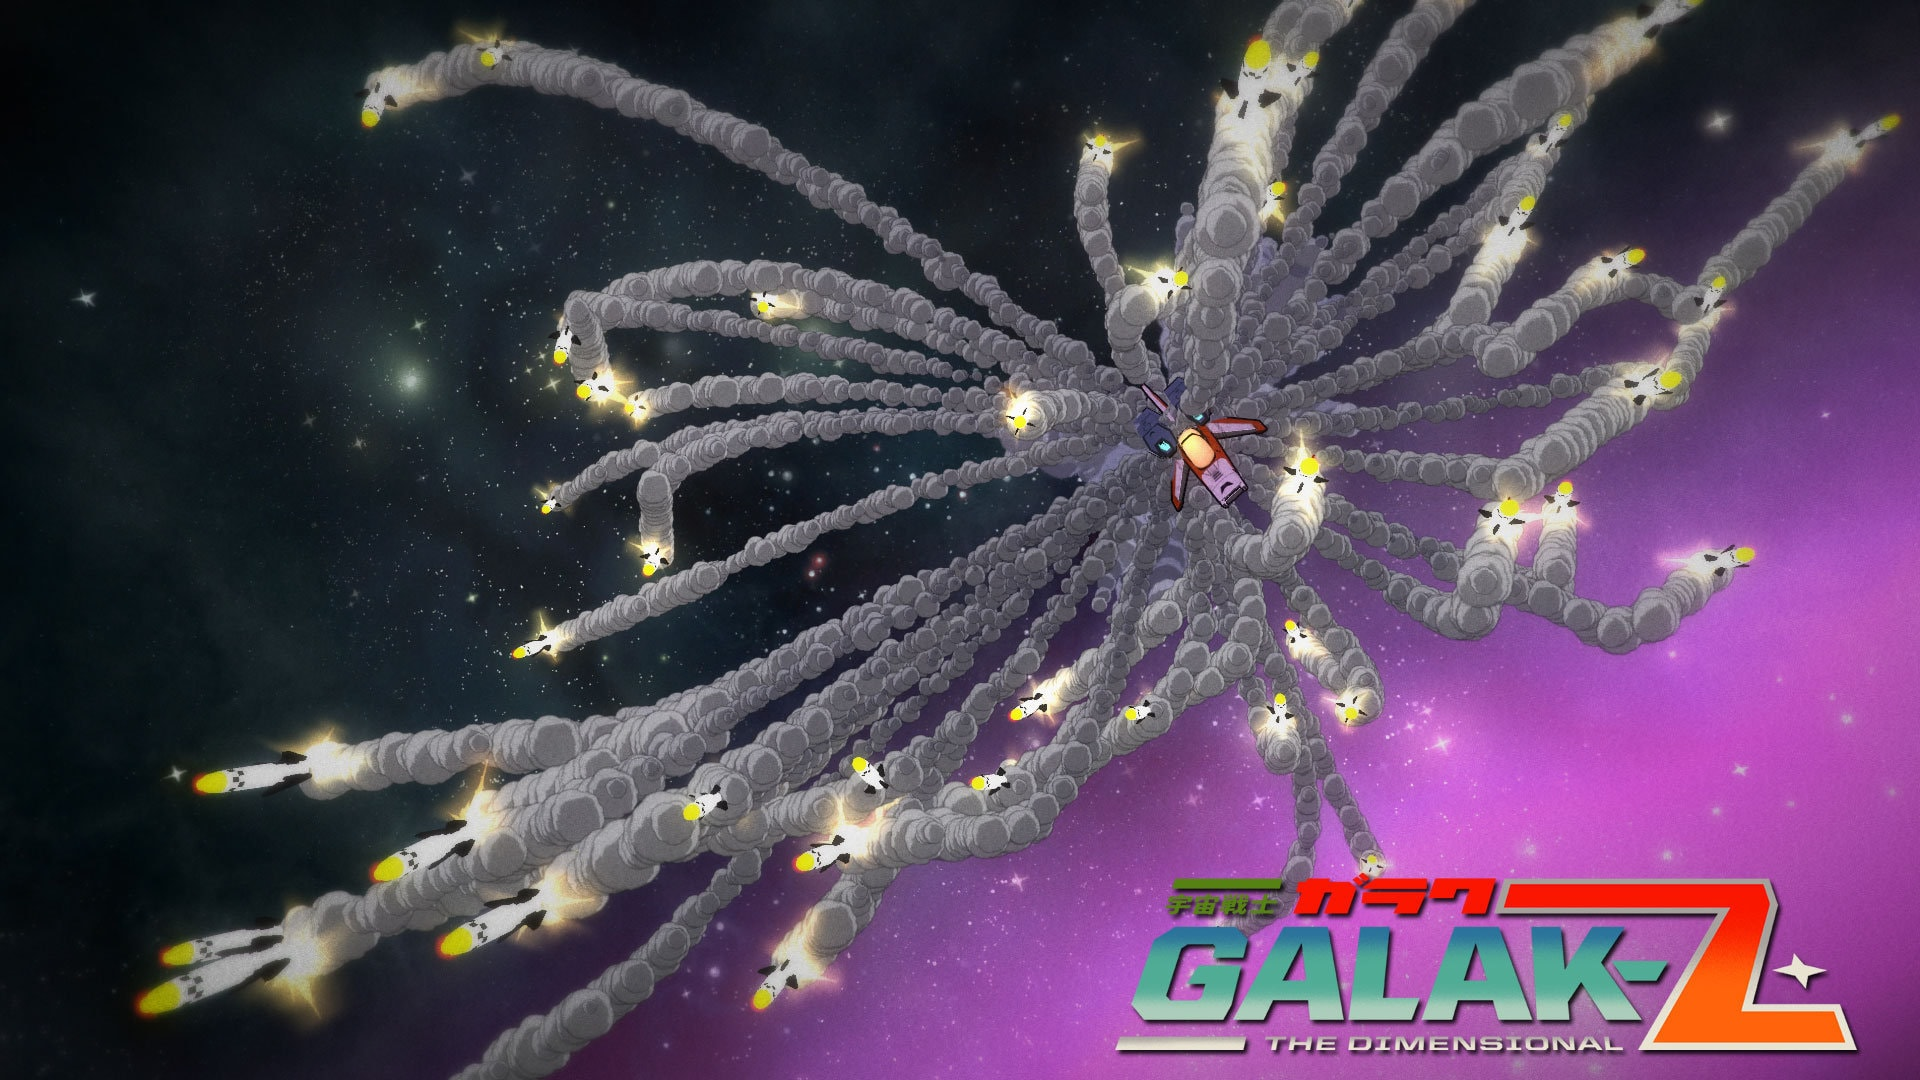 Galak-Z: The Dimensional Wallpapers hd